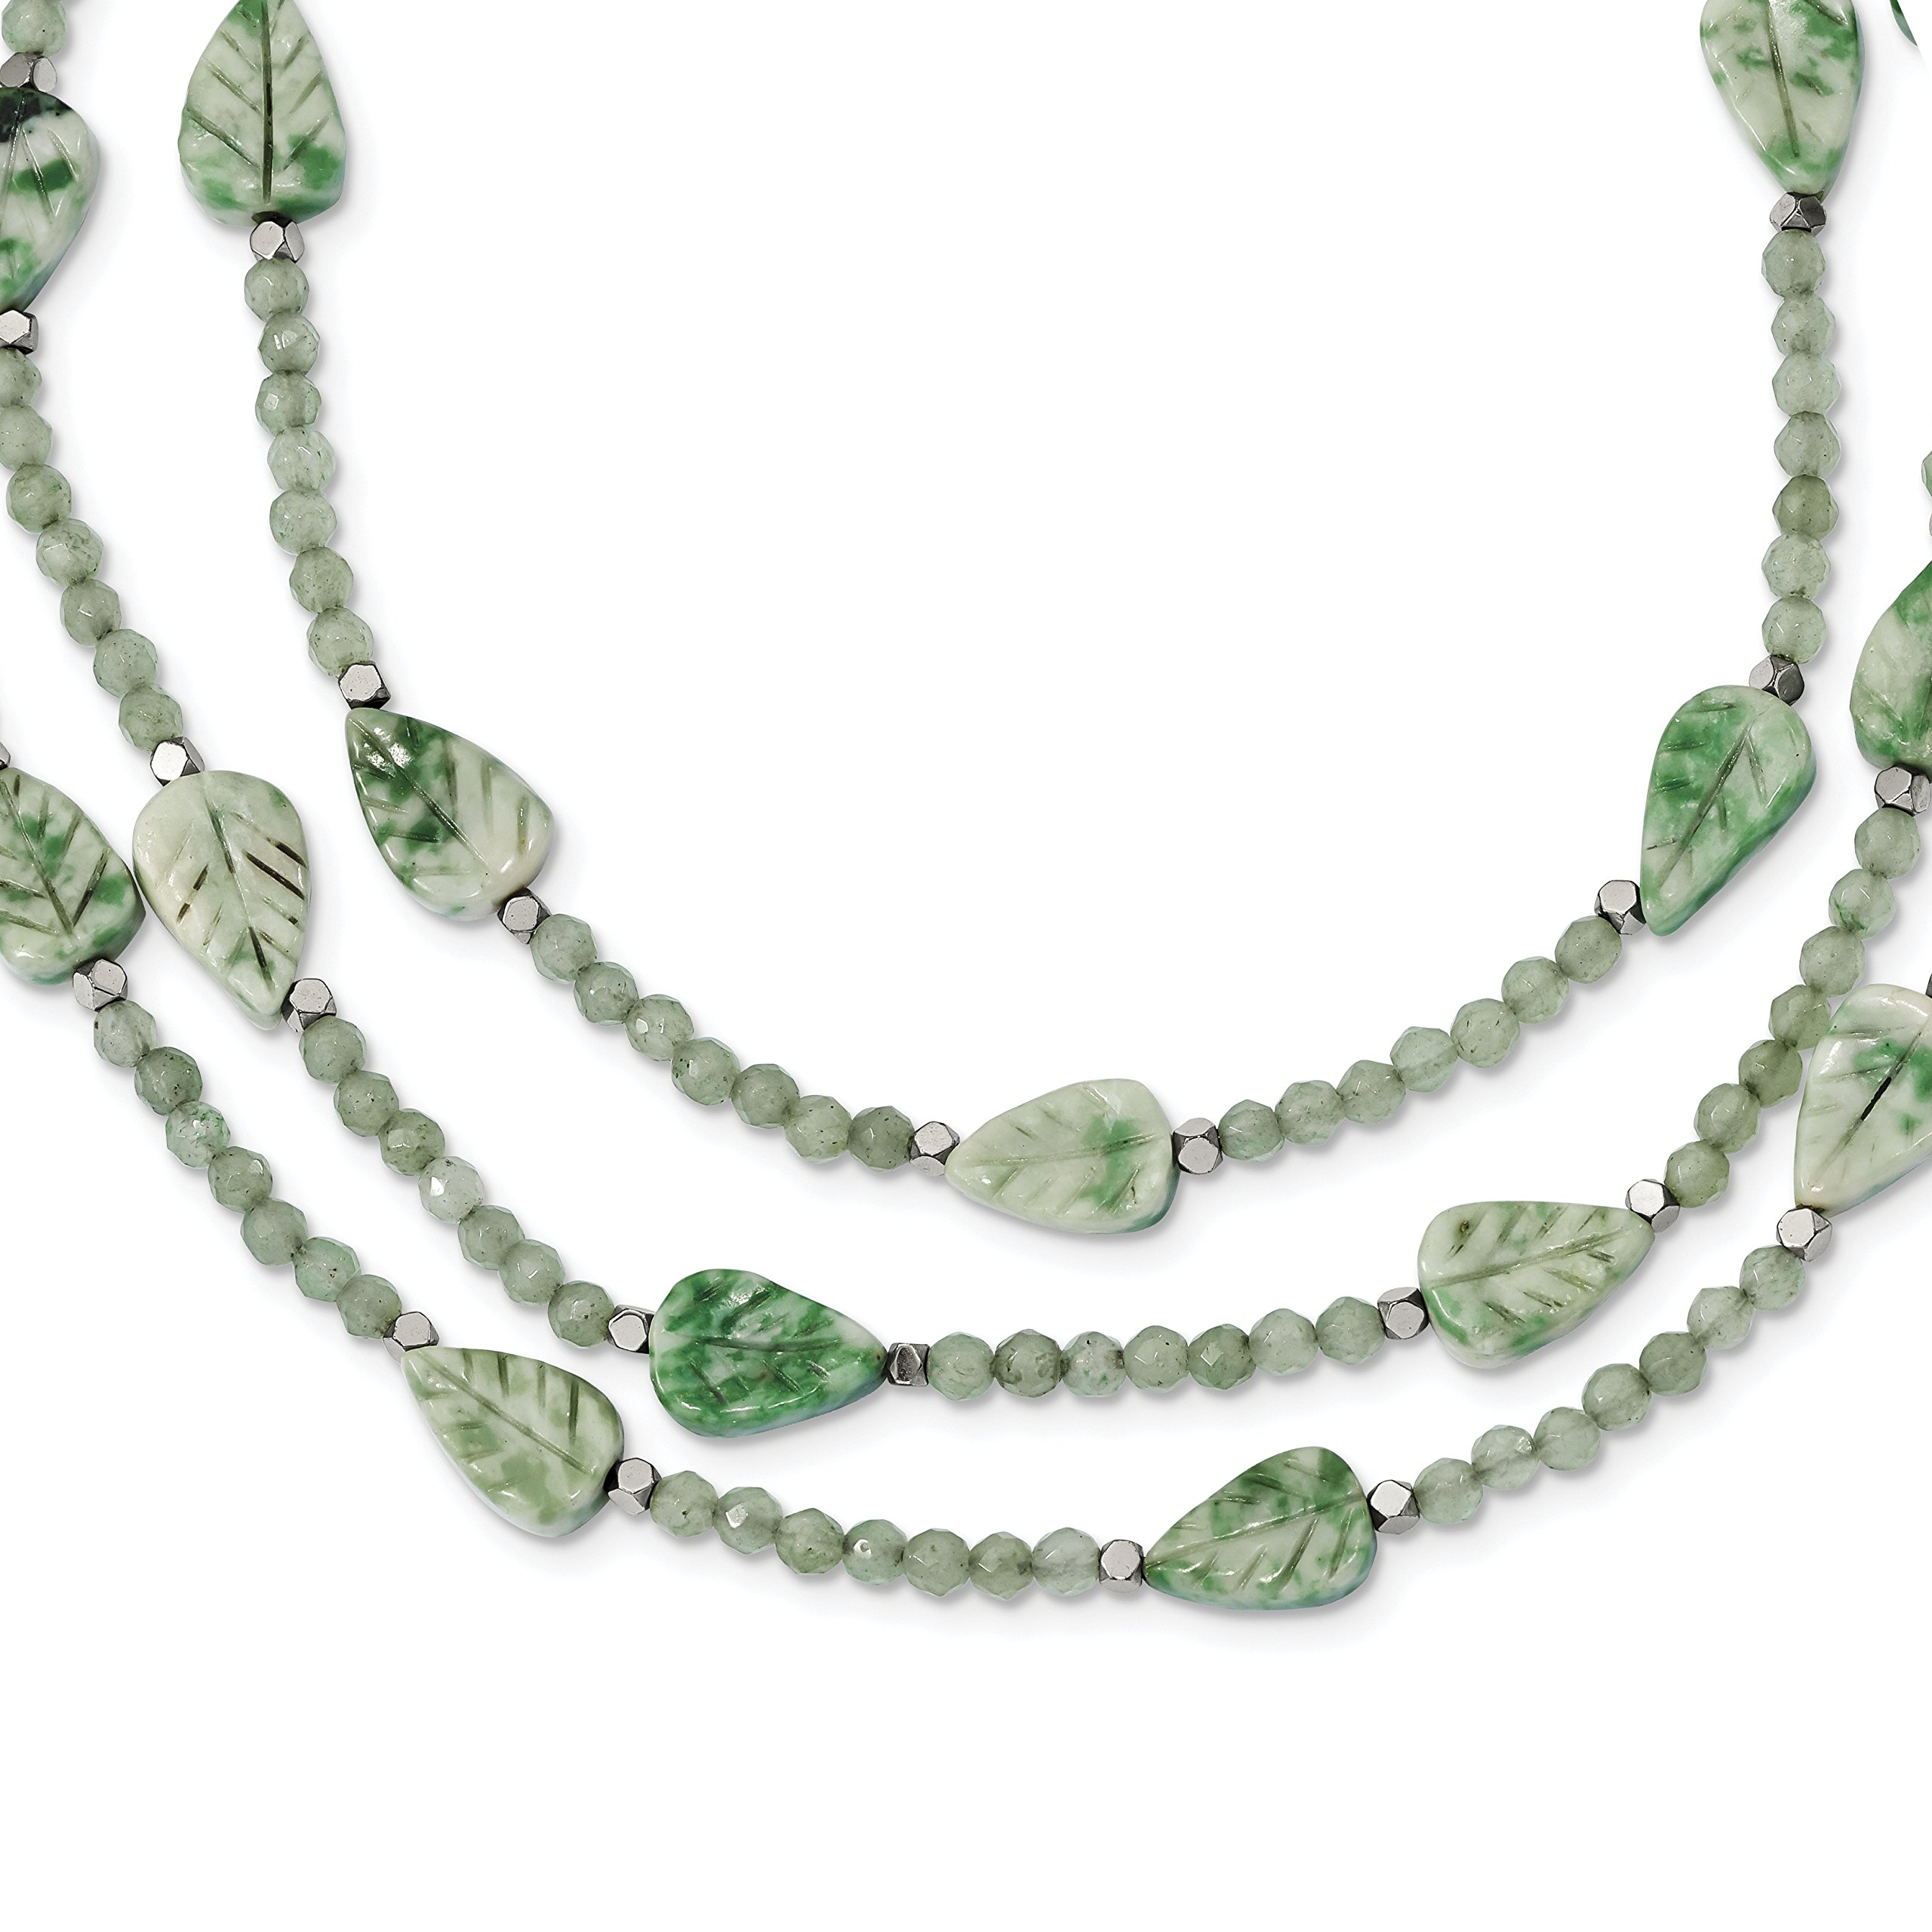 ICE CARATS 925 Sterling Silver Hematite/green Quartz/tree Agate Leaves 3 Strand W2in Extension Chain Necklace Natural Stone Fine Jewelry Gift Set For Women Heart